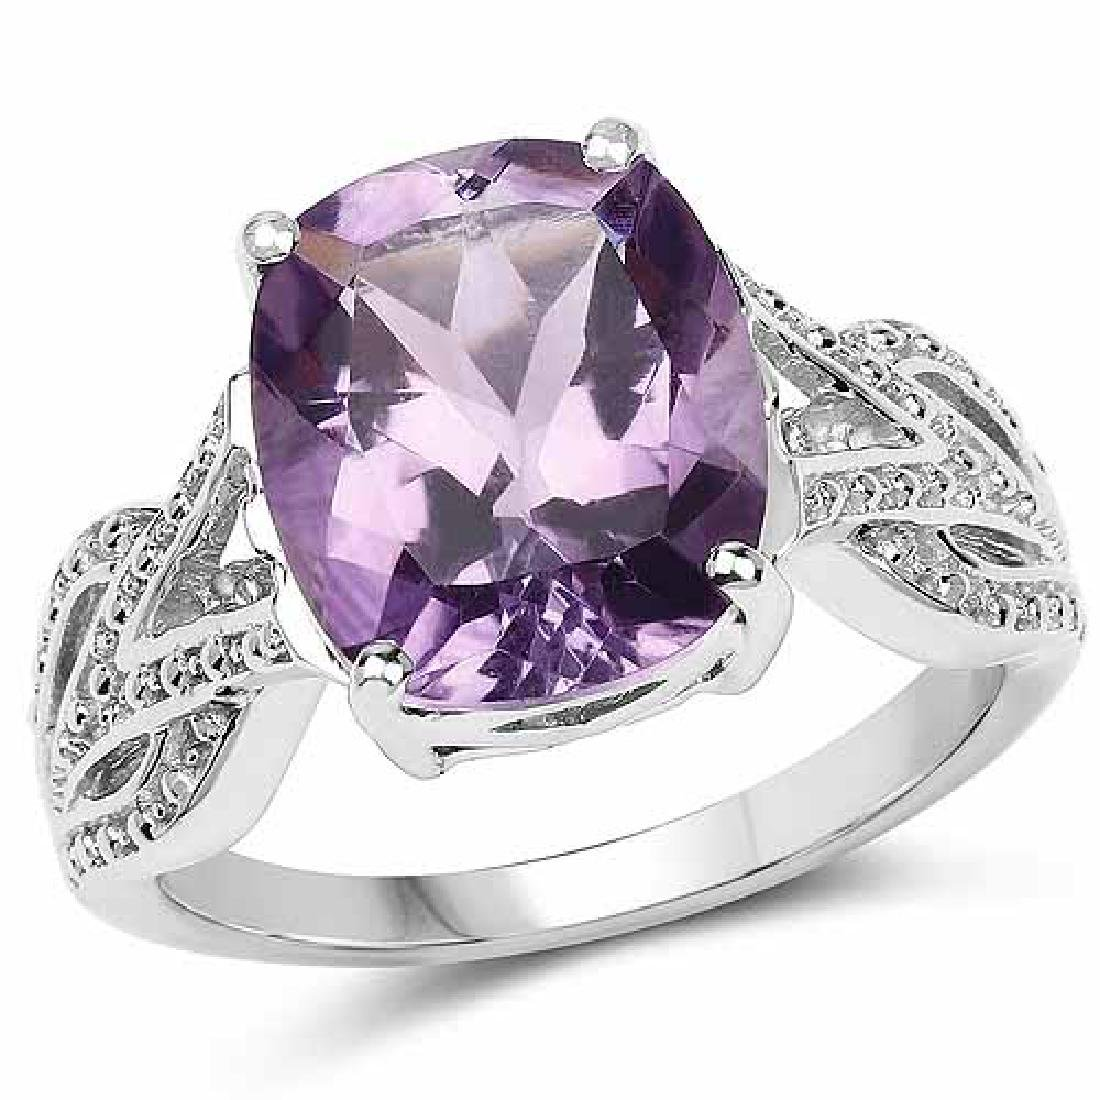 4.20 Carat Genuine Amethyst .925 Sterling Silver Ring